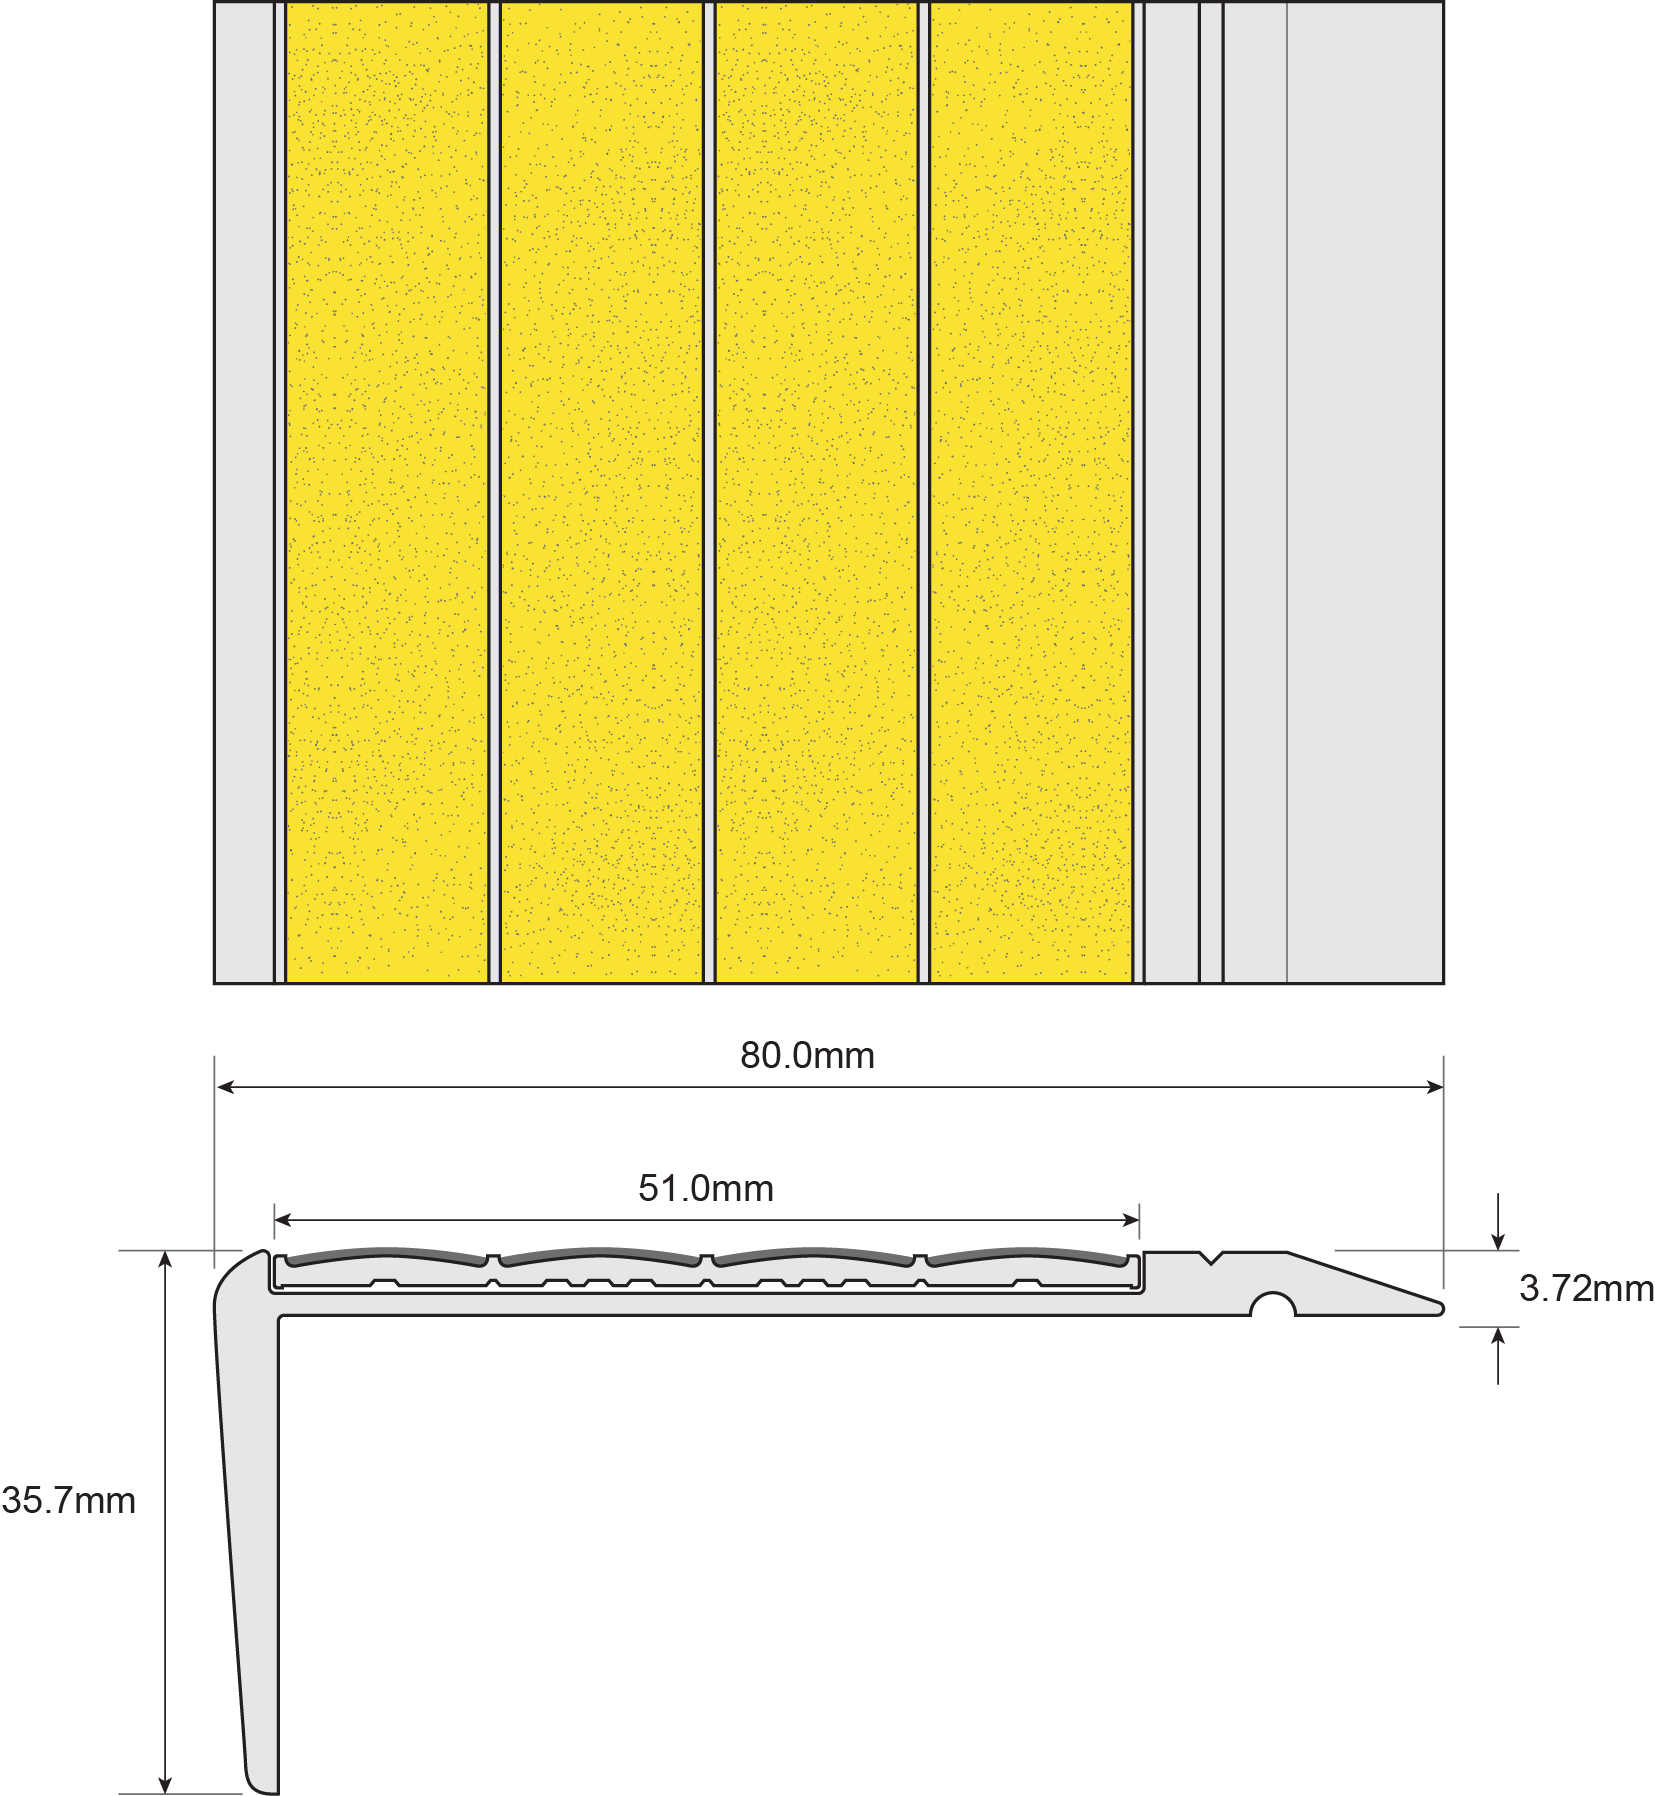 ESP Stair Nosing 35.7x80mm F430150 YELLOW Technical Drawing